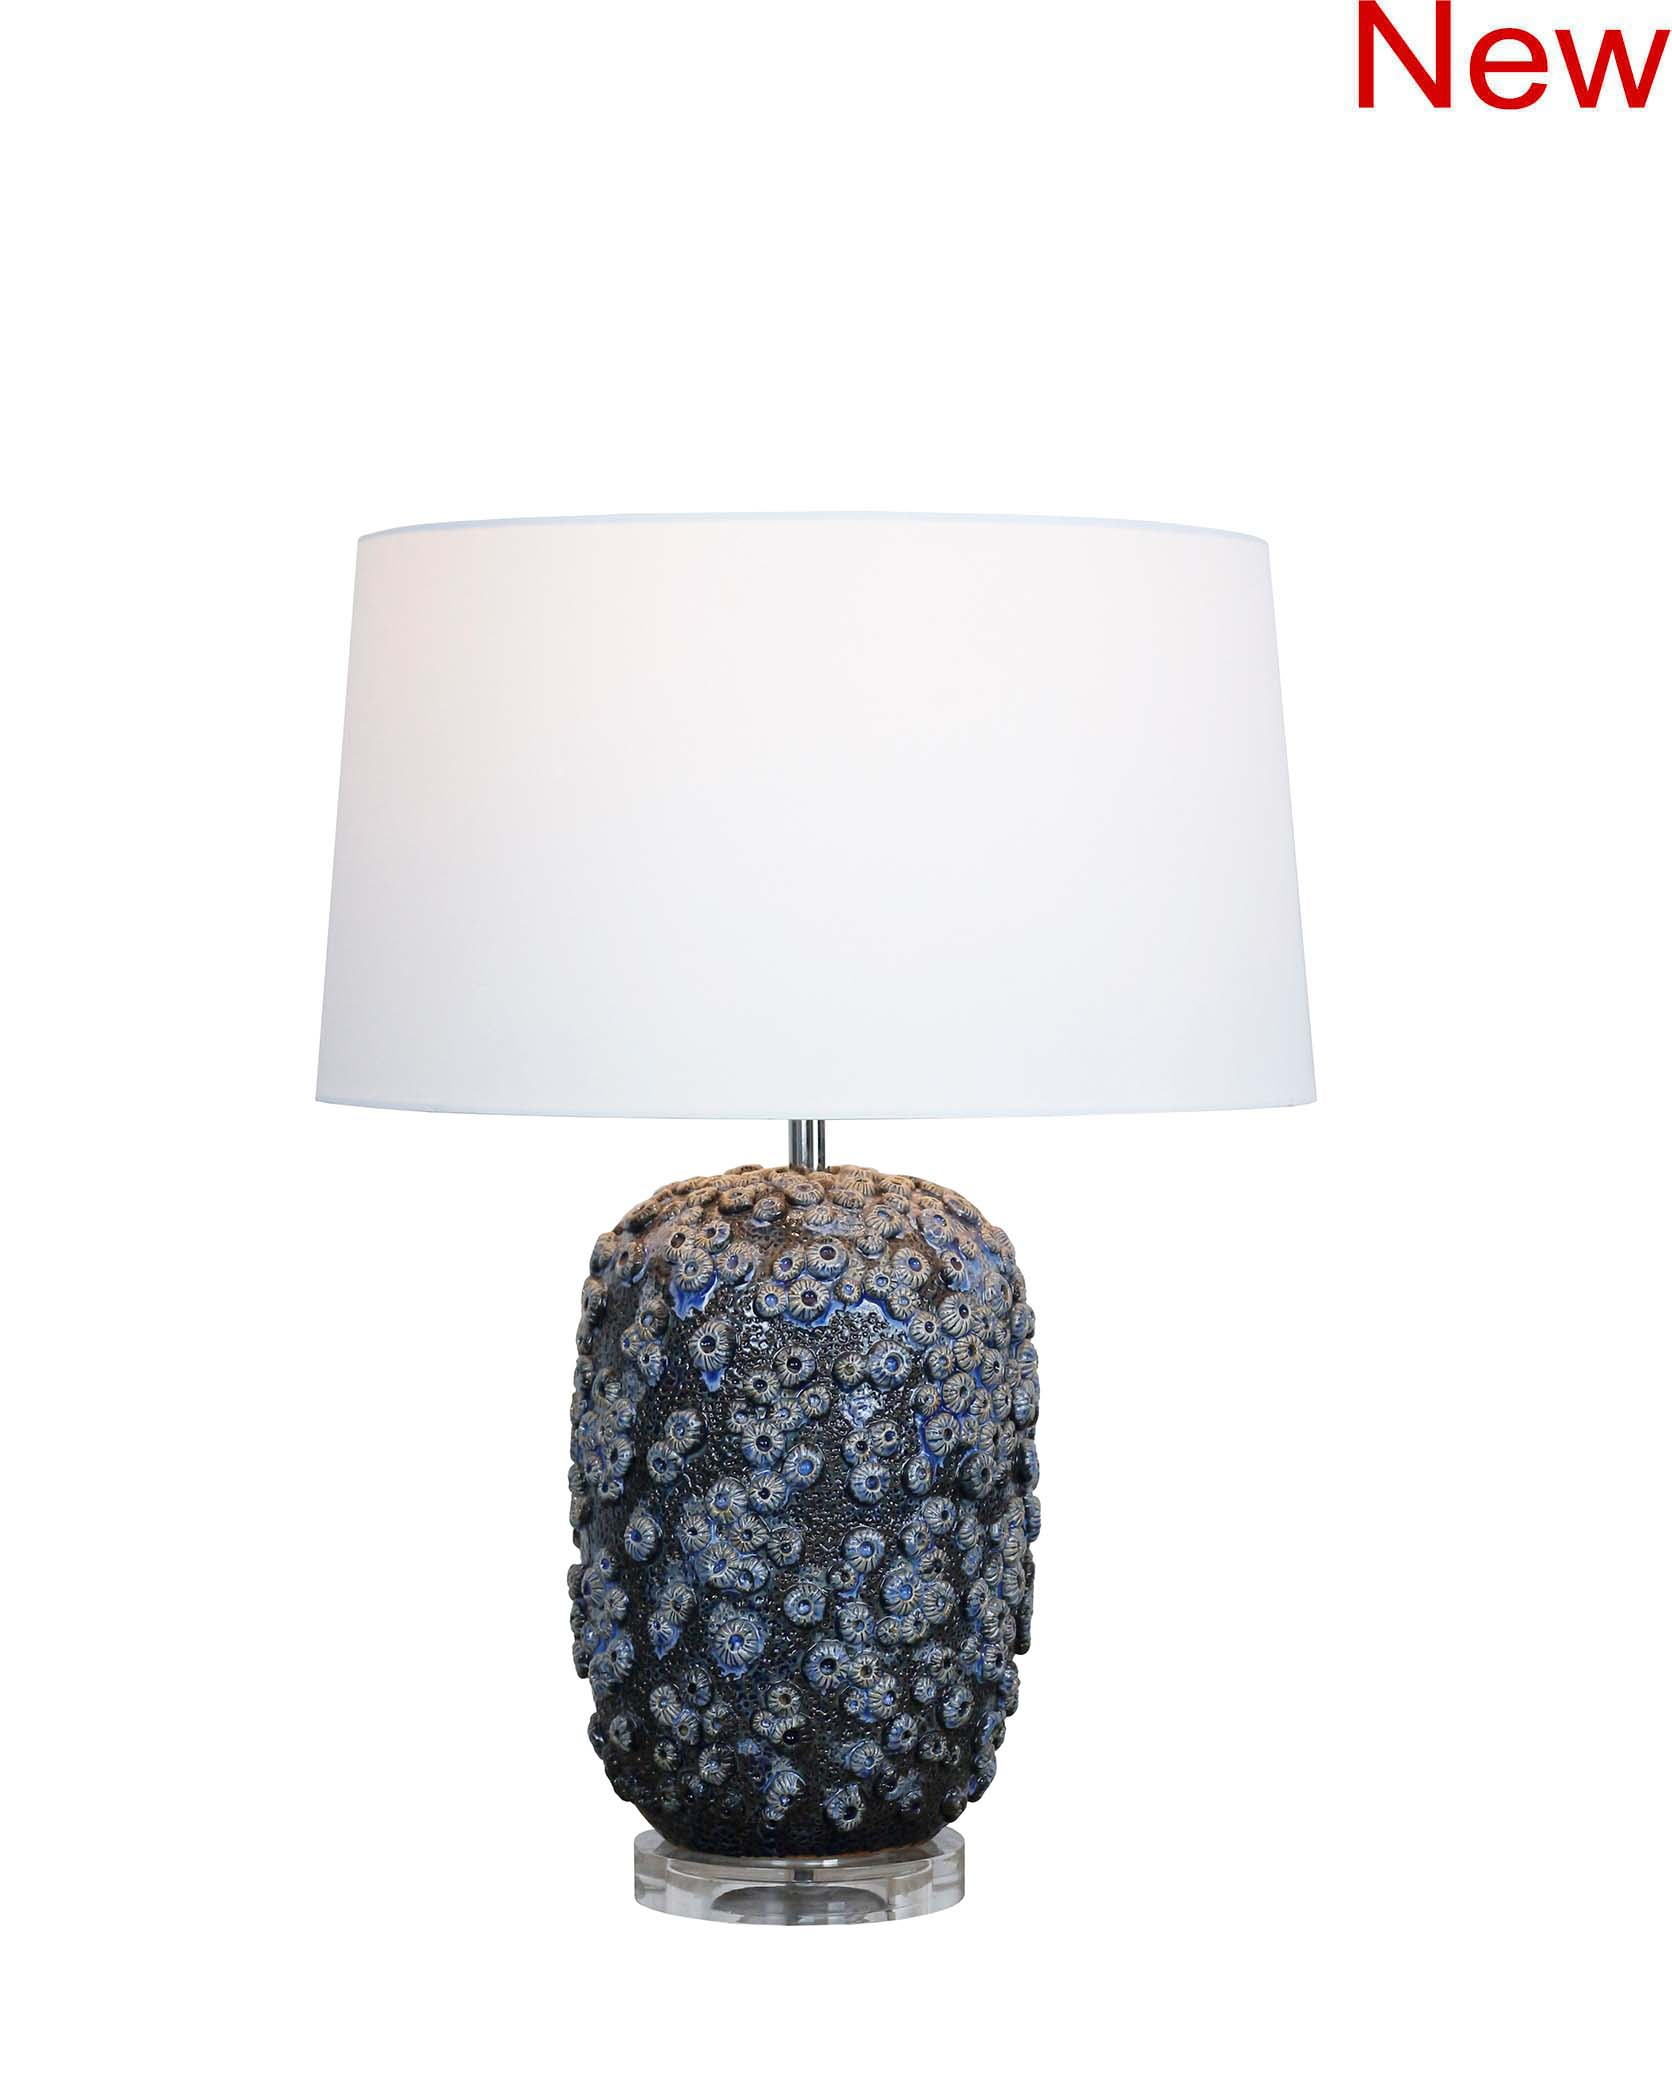 star coral table lamp product photo #2